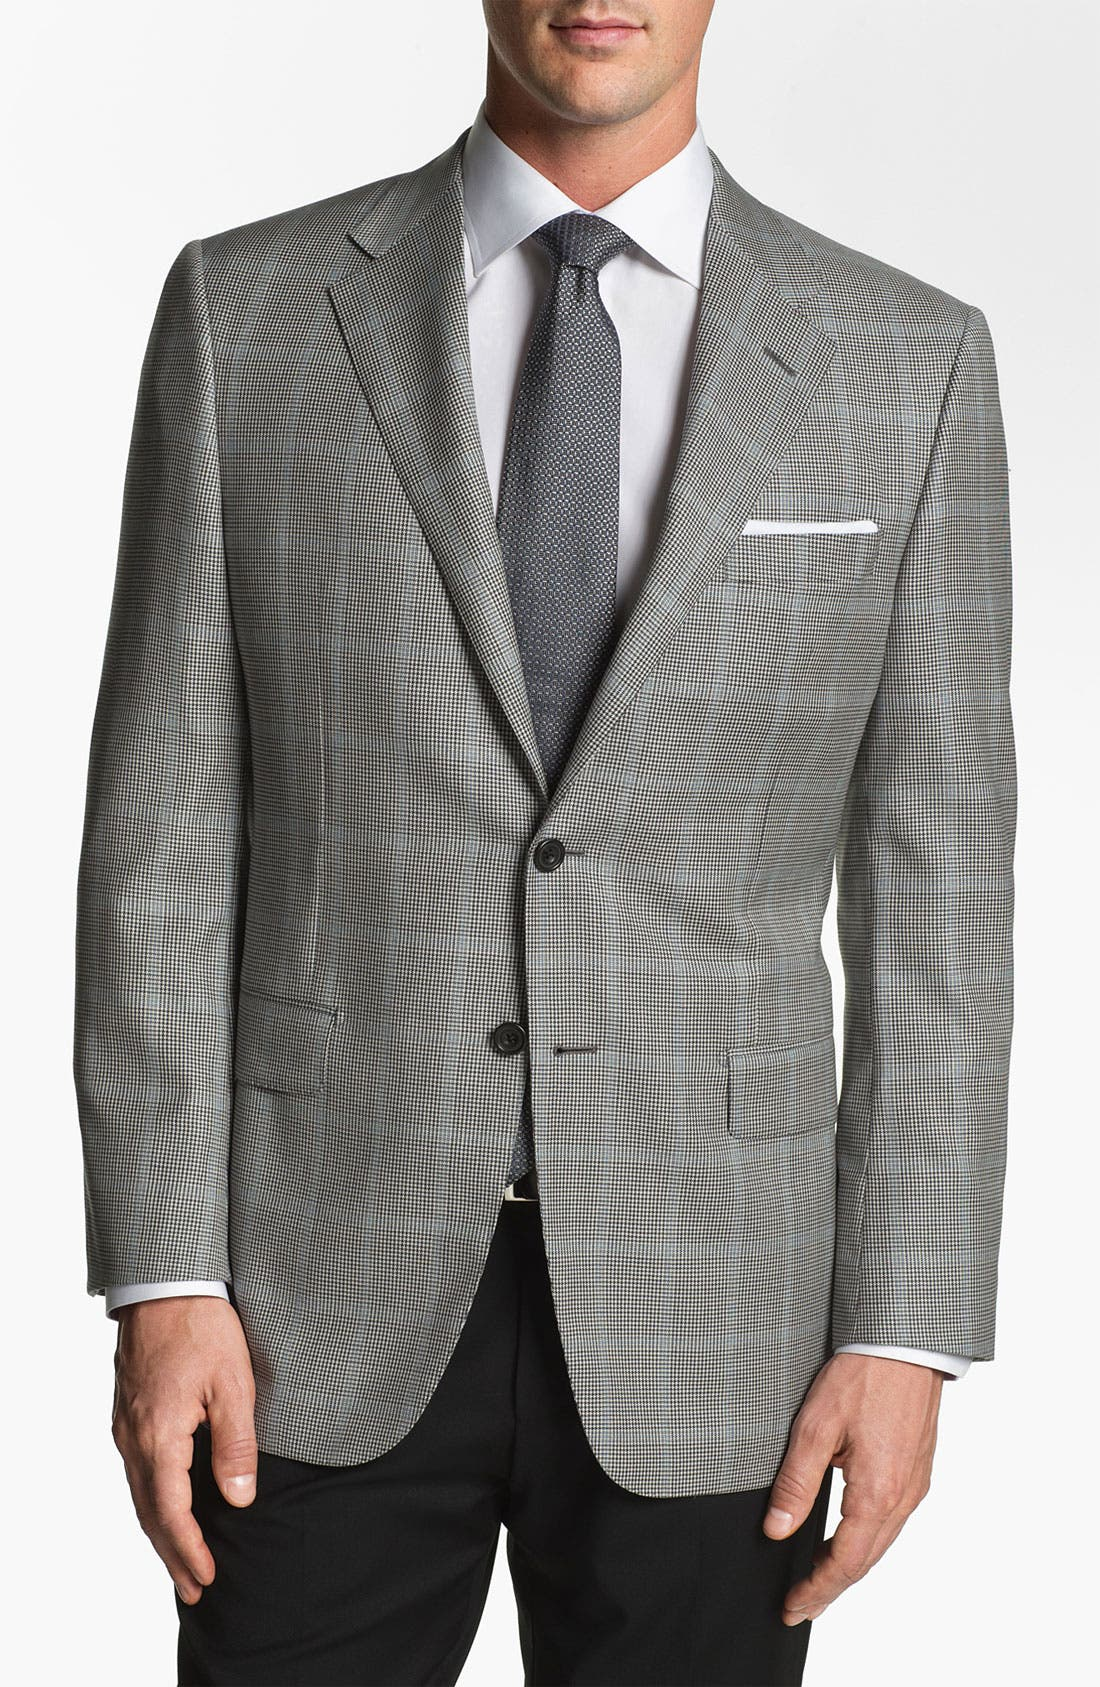 Main Image - Hickey Freeman Houndstooth Sportcoat